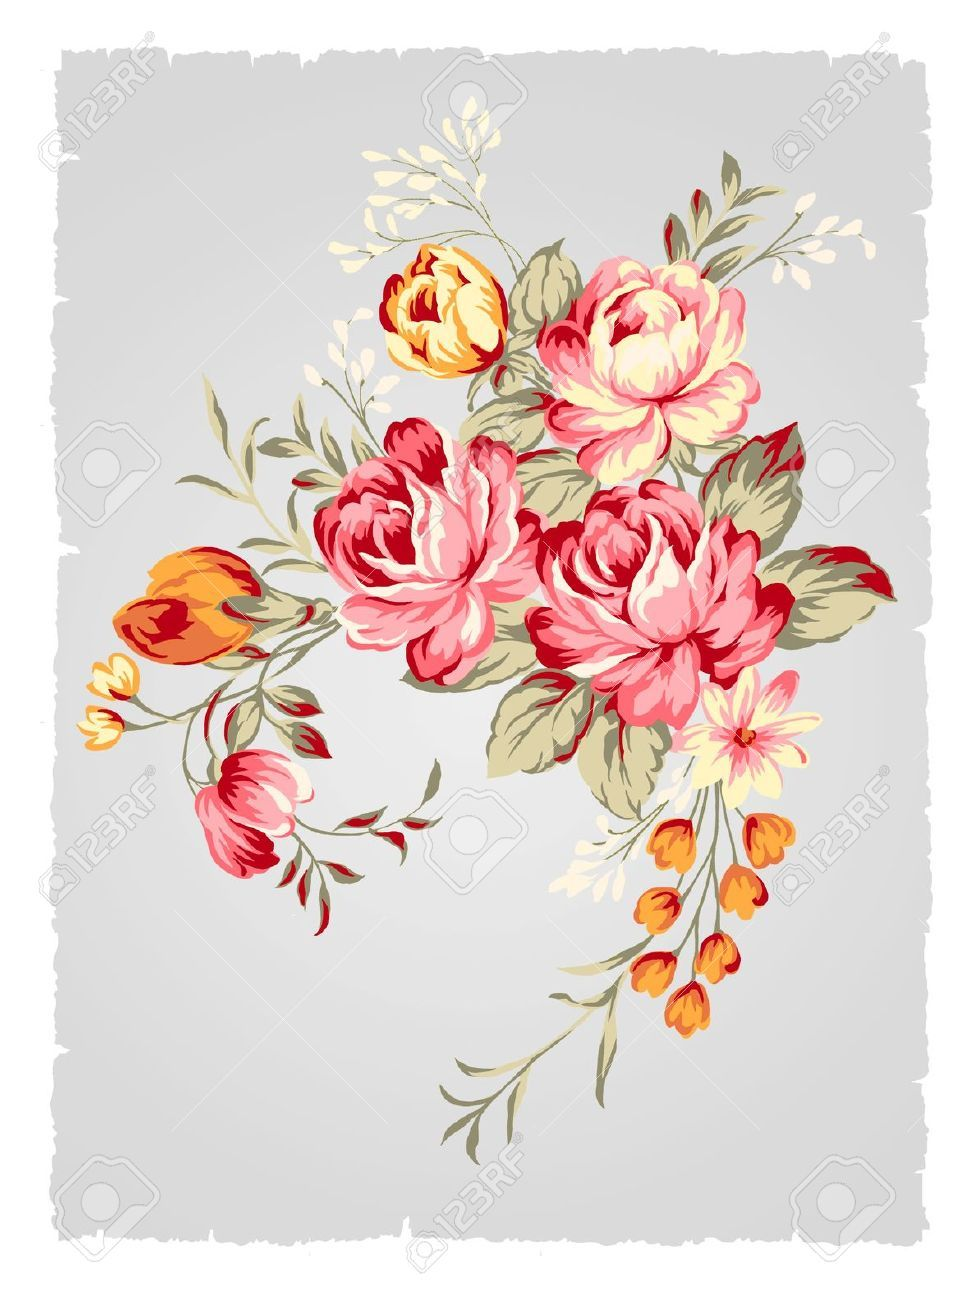 Fabric Painting Flower Patterns Bunch Google Search Easy